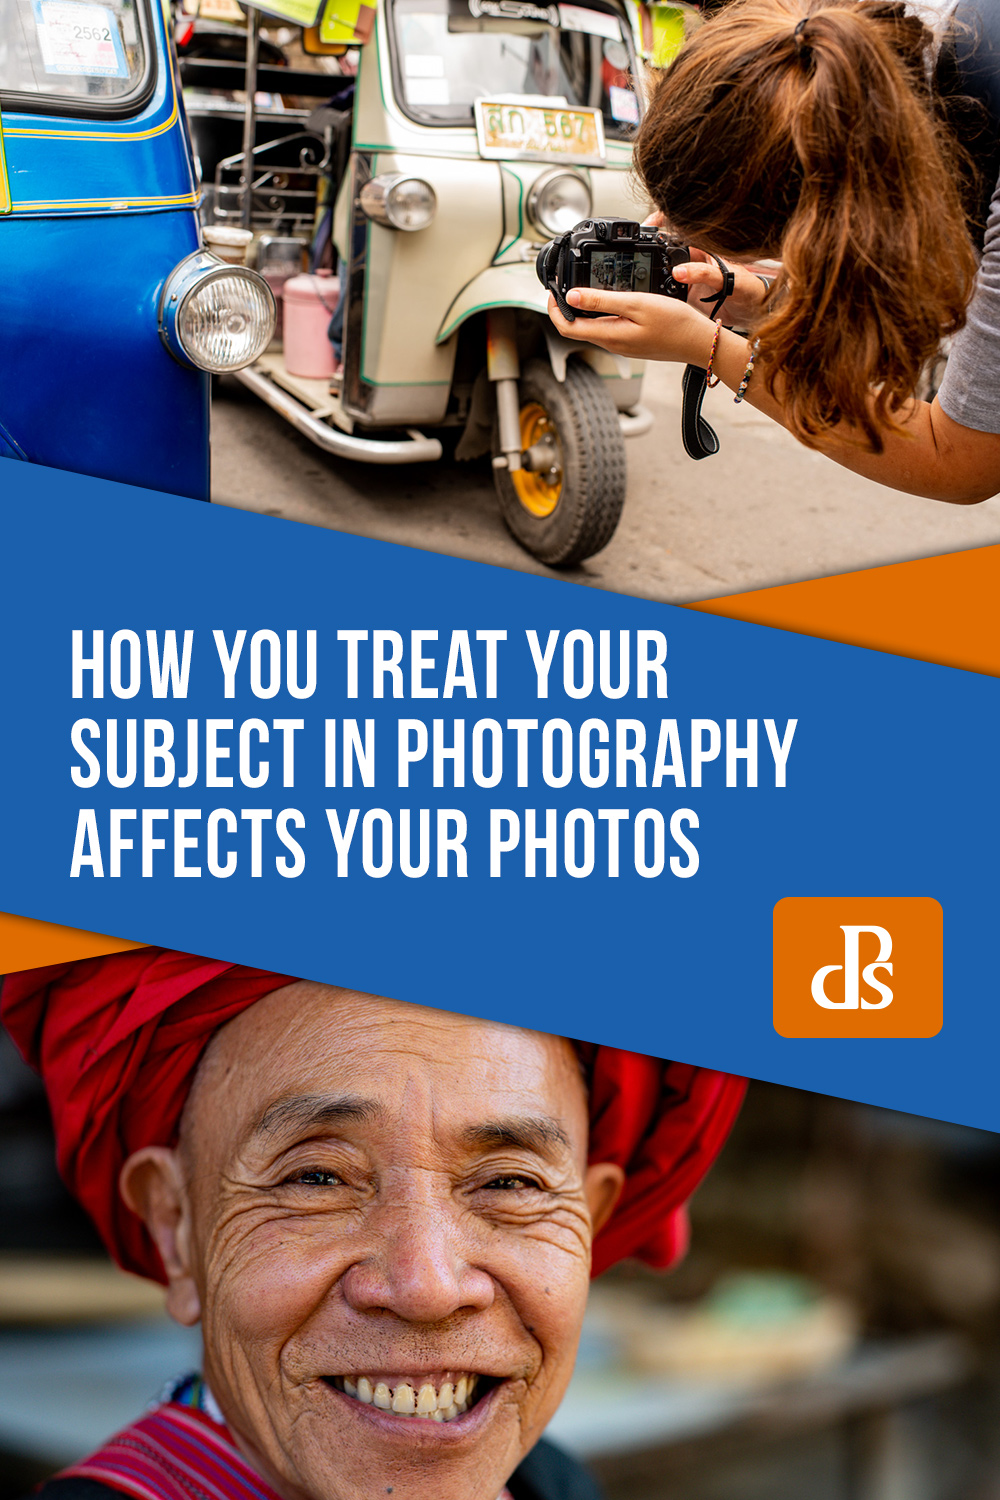 How You Treat Your Subject in Photography Affects Your Photos